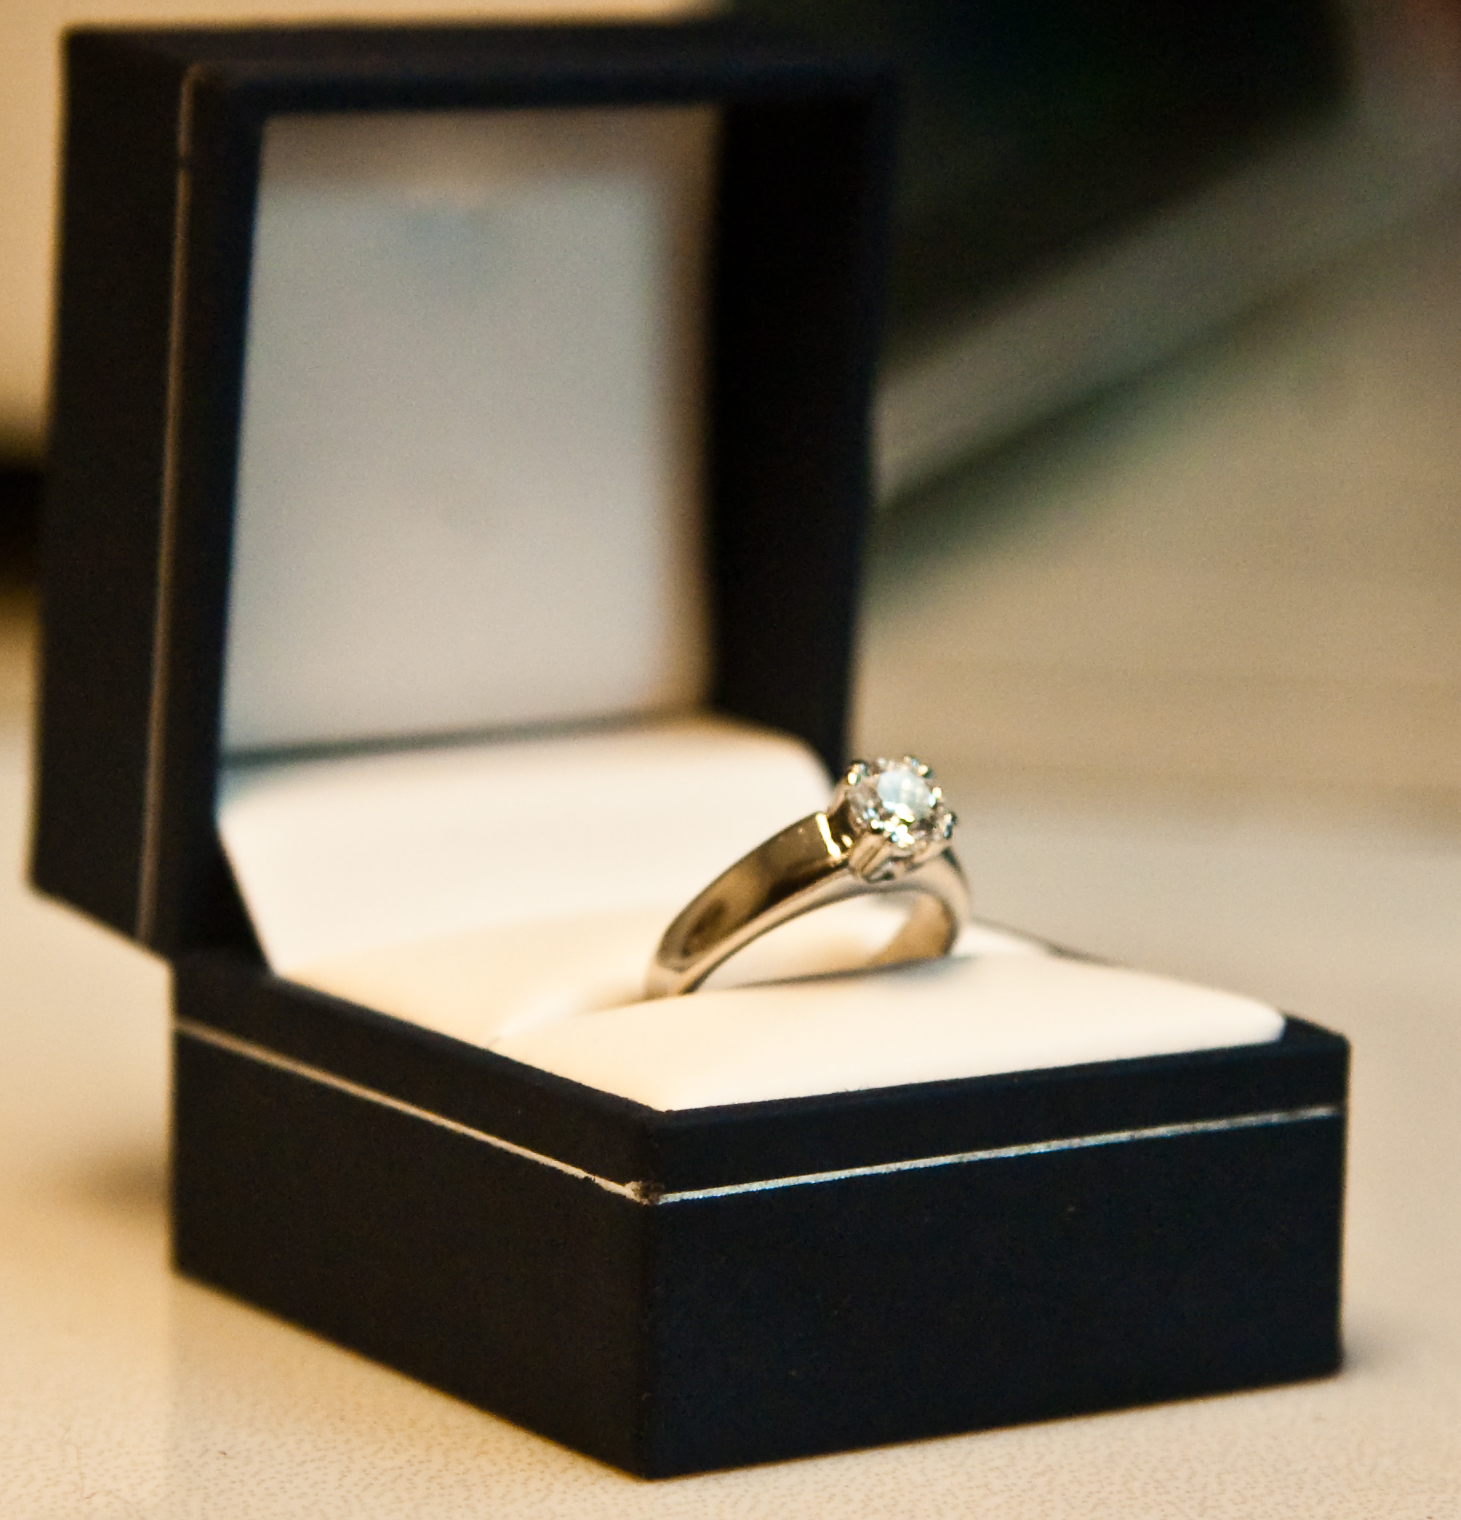 gold wedding ring in box - Wedding Ring Box